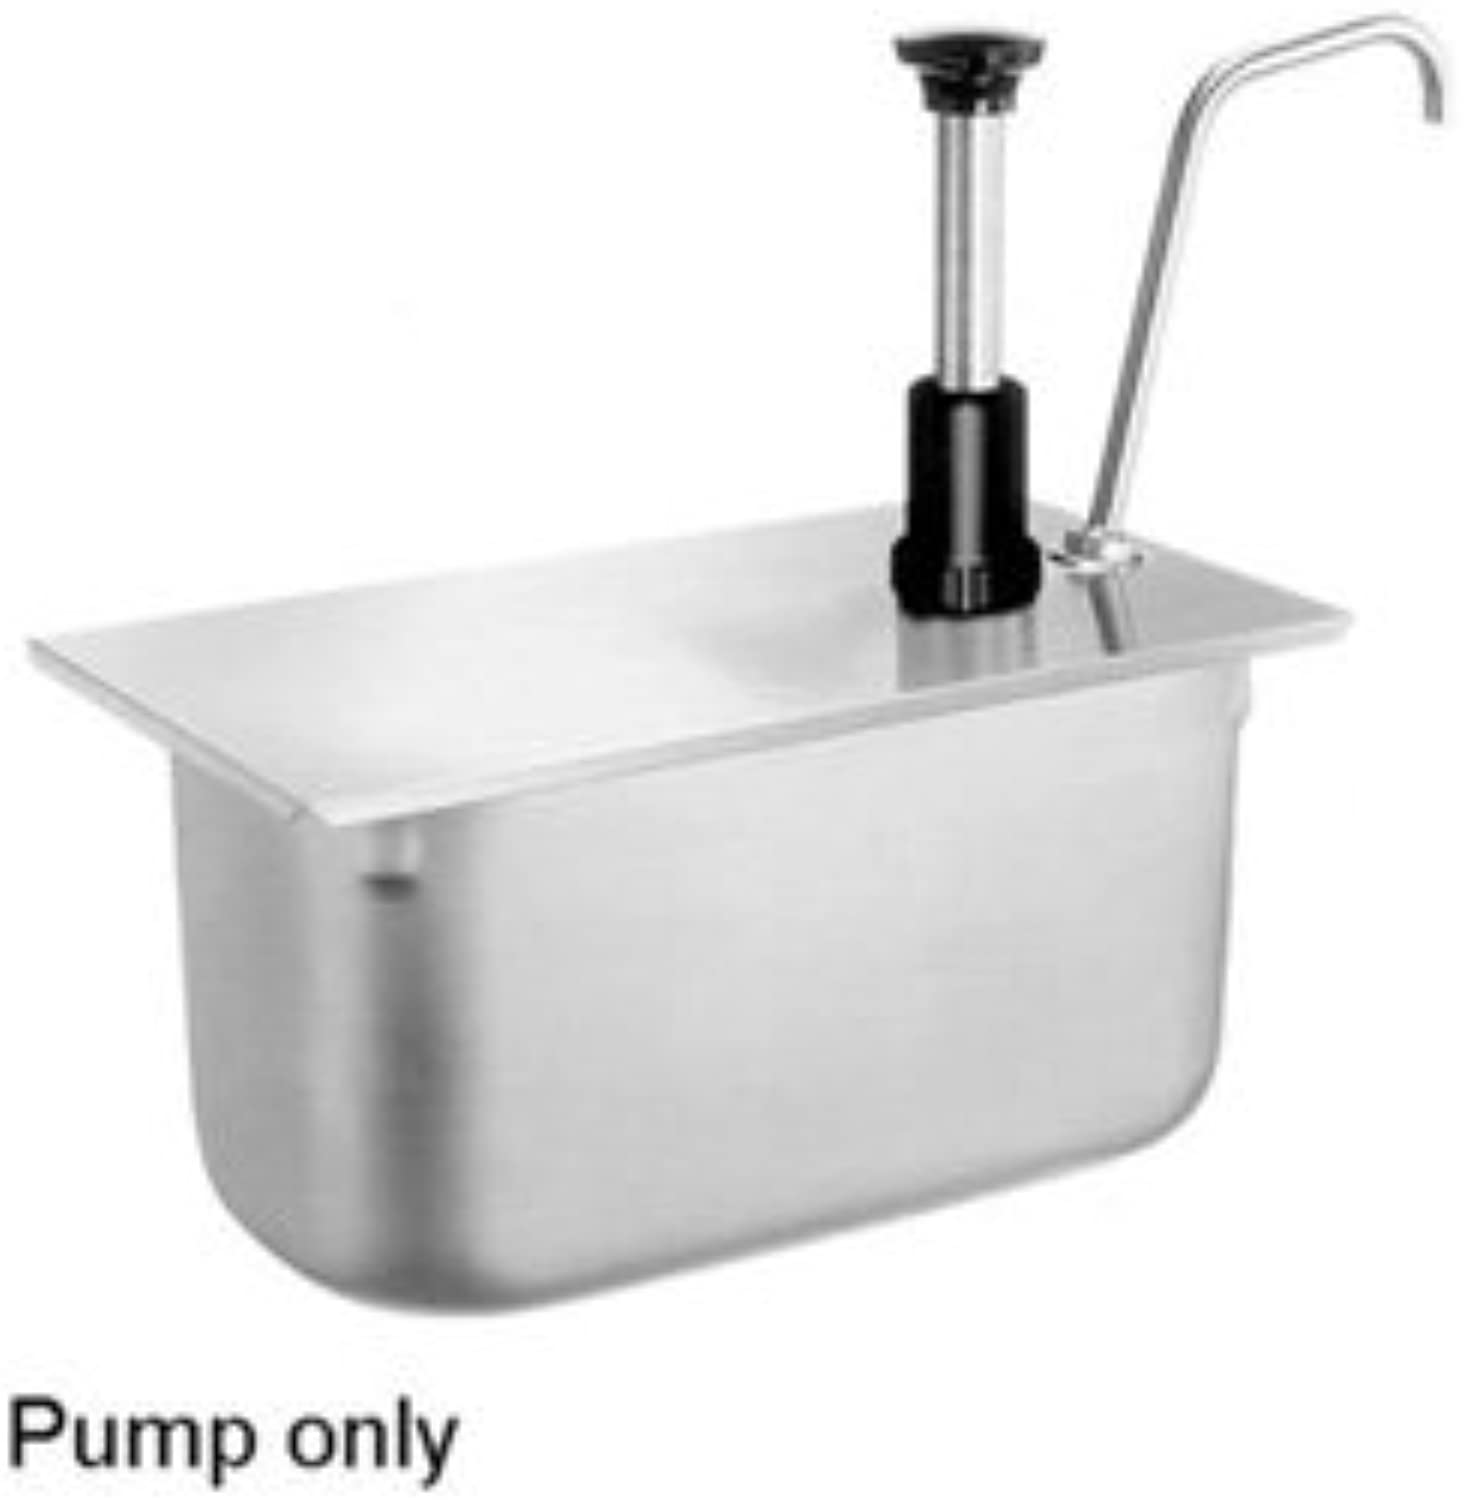 Server Products CP-1 4-83420 Food Pan Pump for 1 4-Size Food Pan, 150 mm, 1 oz. Full Portion, Dispenses Thick and Particulate Consistency Condiments, Stainless Steel